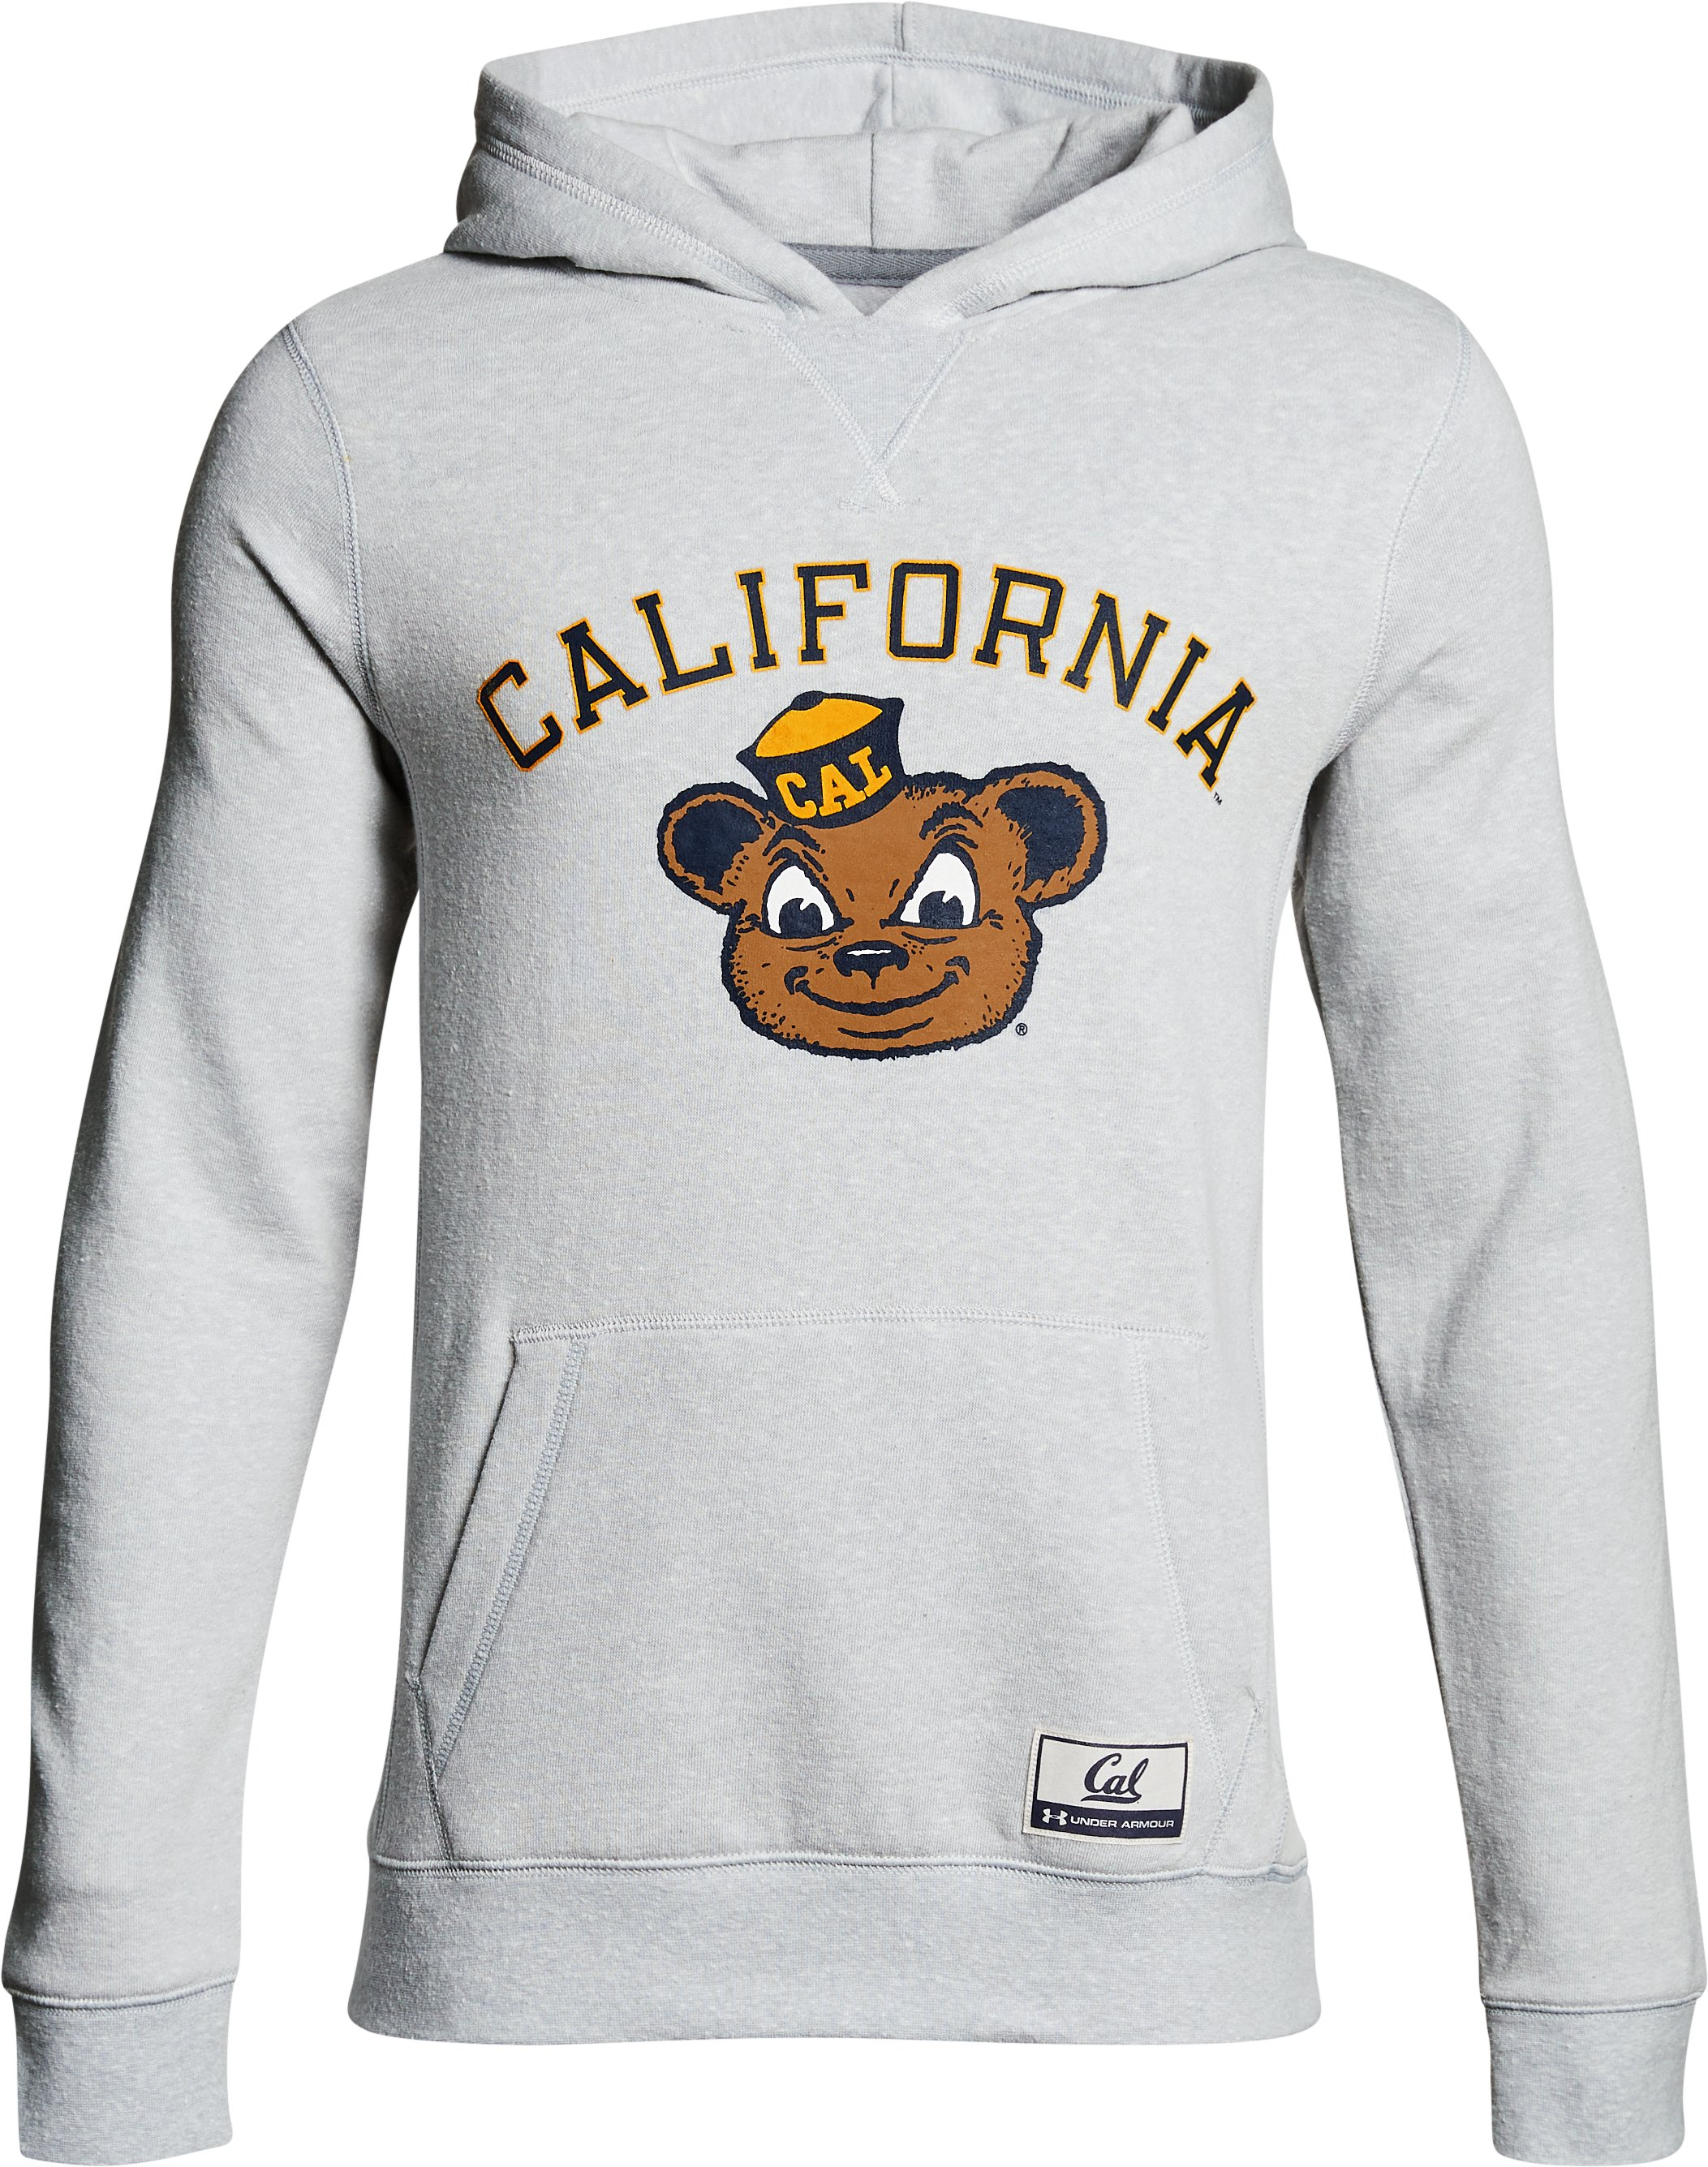 Boy's Cal Bears Iconic Hoodie, Gray, undefined